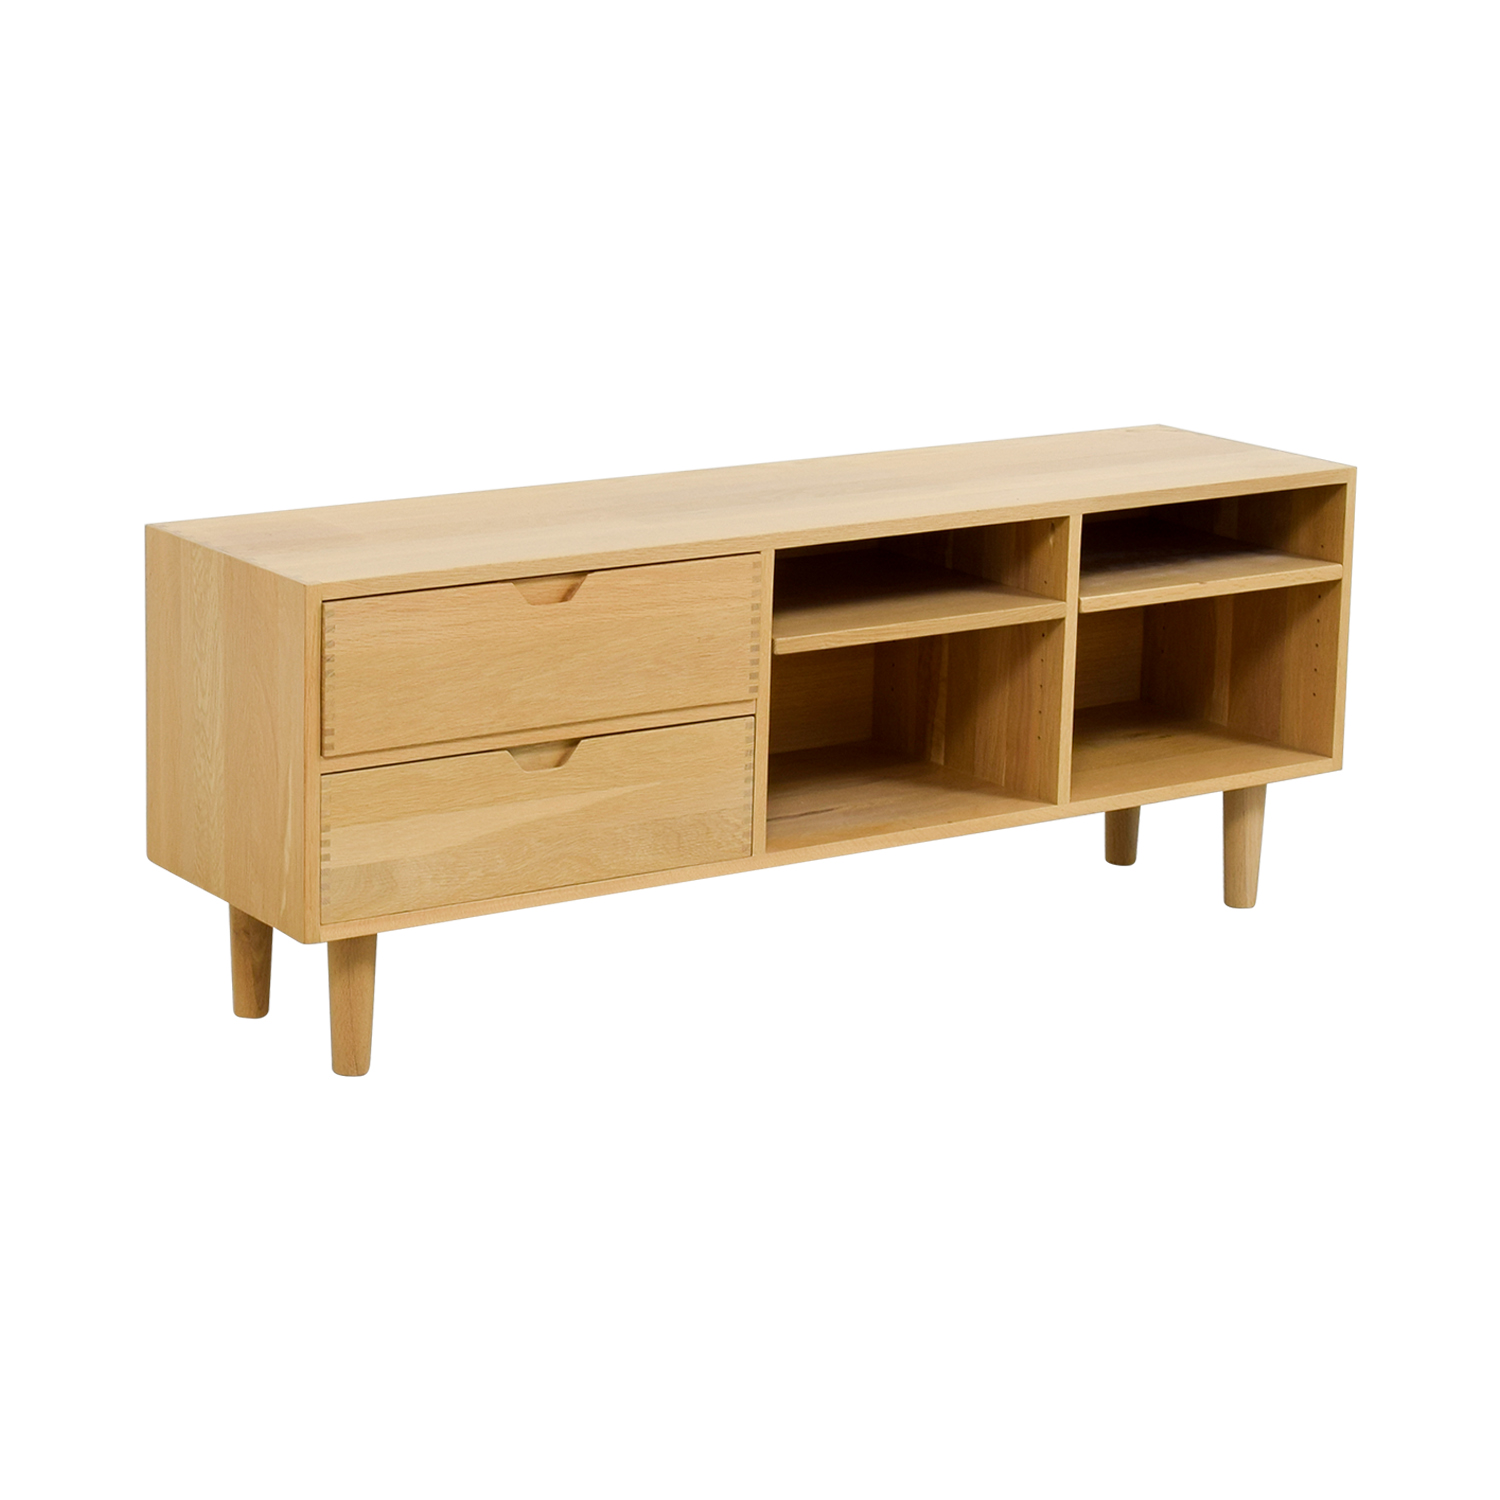 The Conran Shop for ABC Home The Conran Shop Media Console price